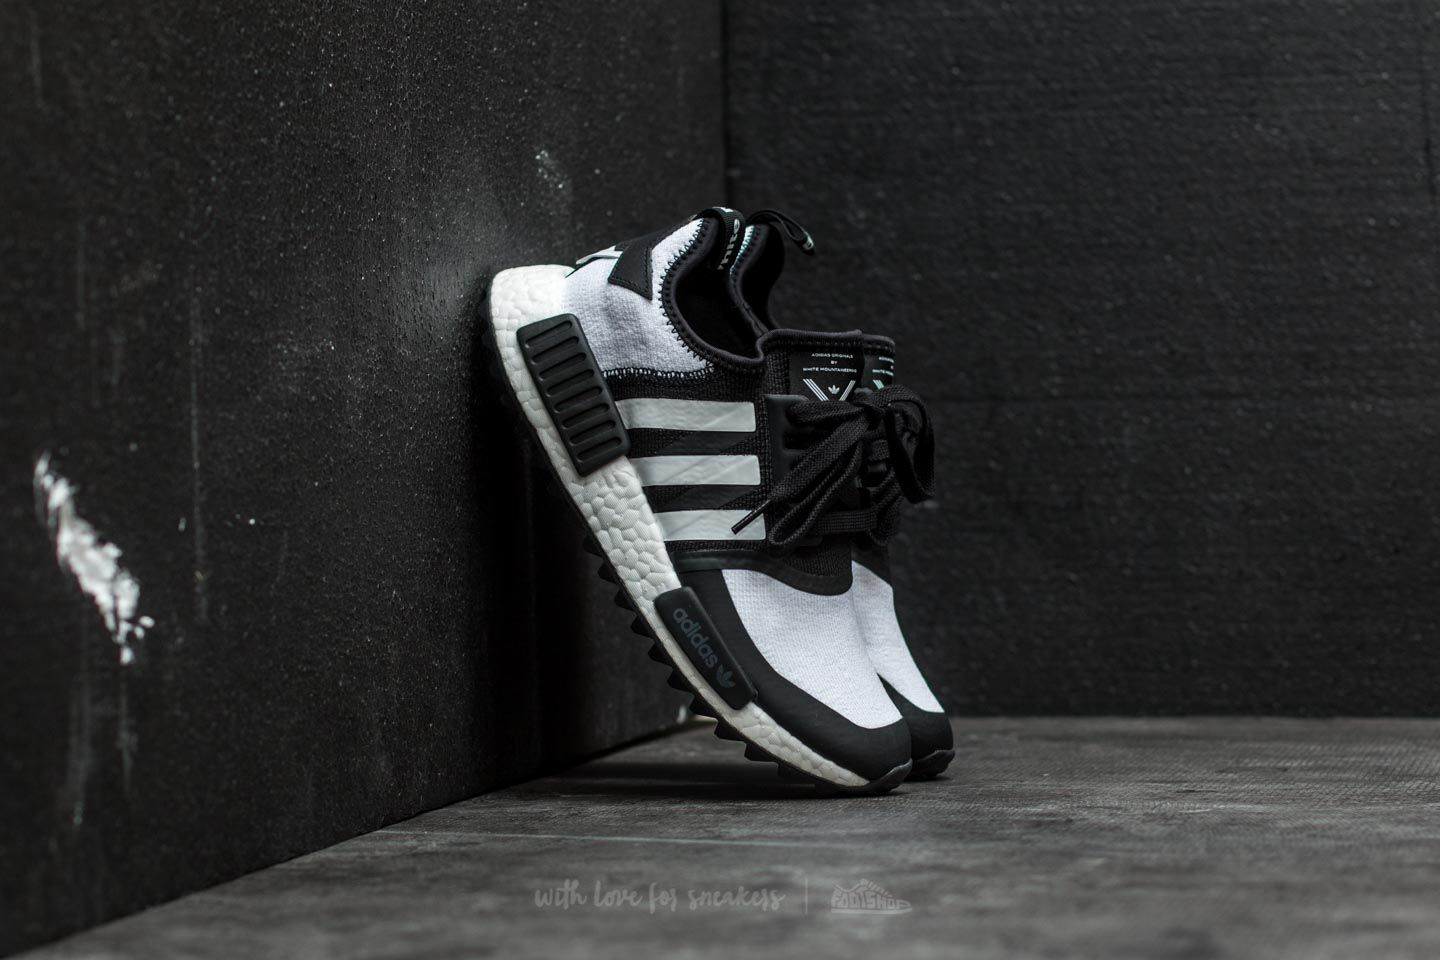 f030ab1de adidas x White Mountaineering NMD Trail Primeknit Core Black/ Ftw ...